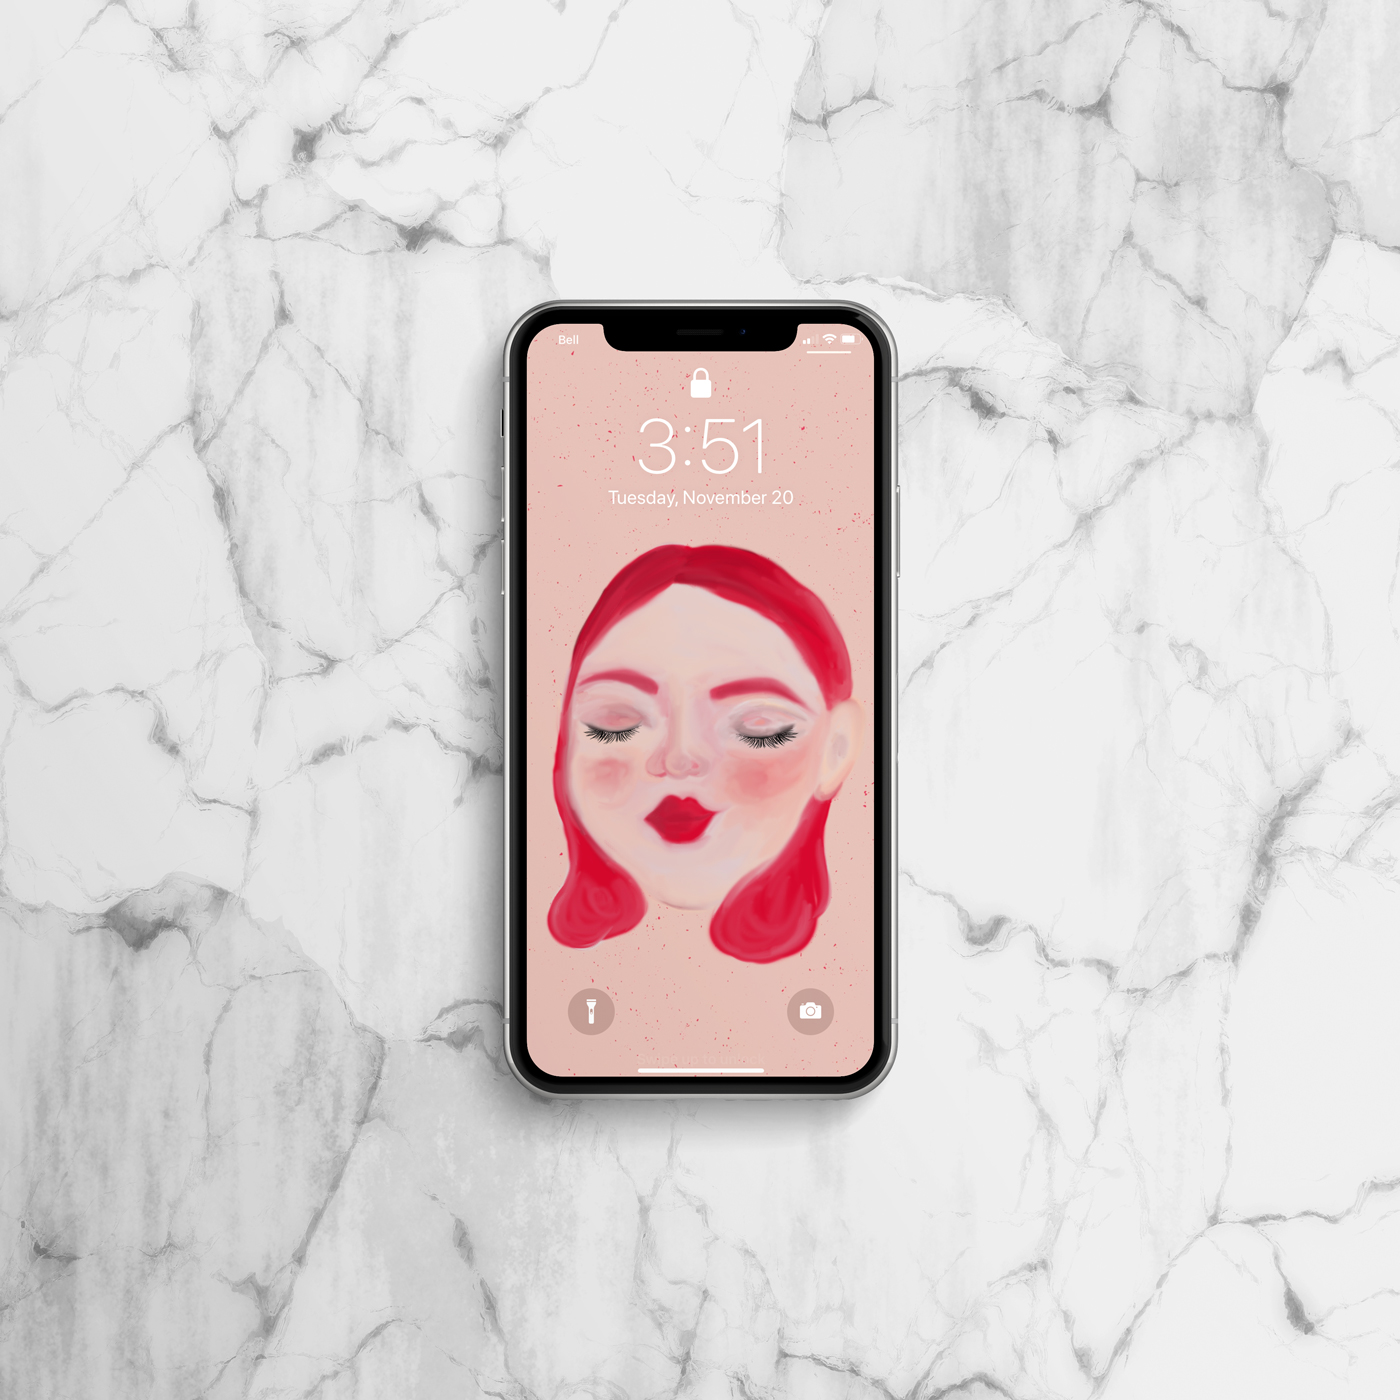 I Feel Good Today Wallpaper Iphone X Emily Only Design